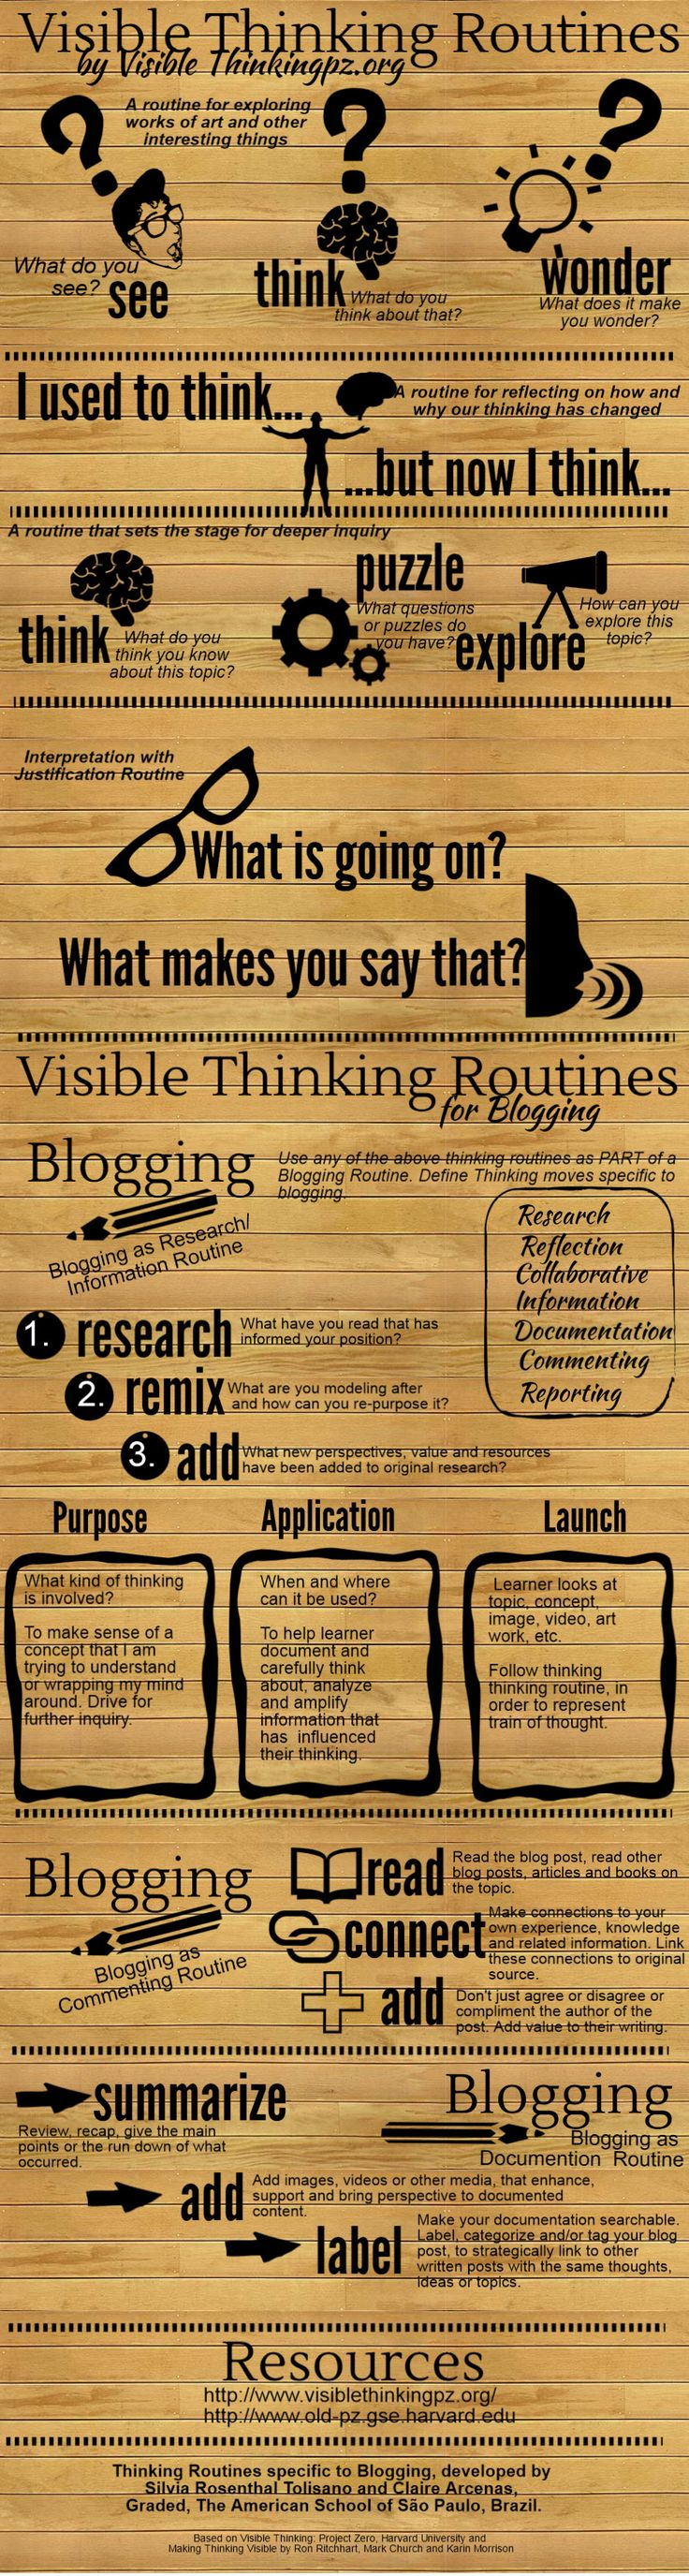 Visible-Thinking-Routines-for-Blogging.jpg 939×3,510 pixels